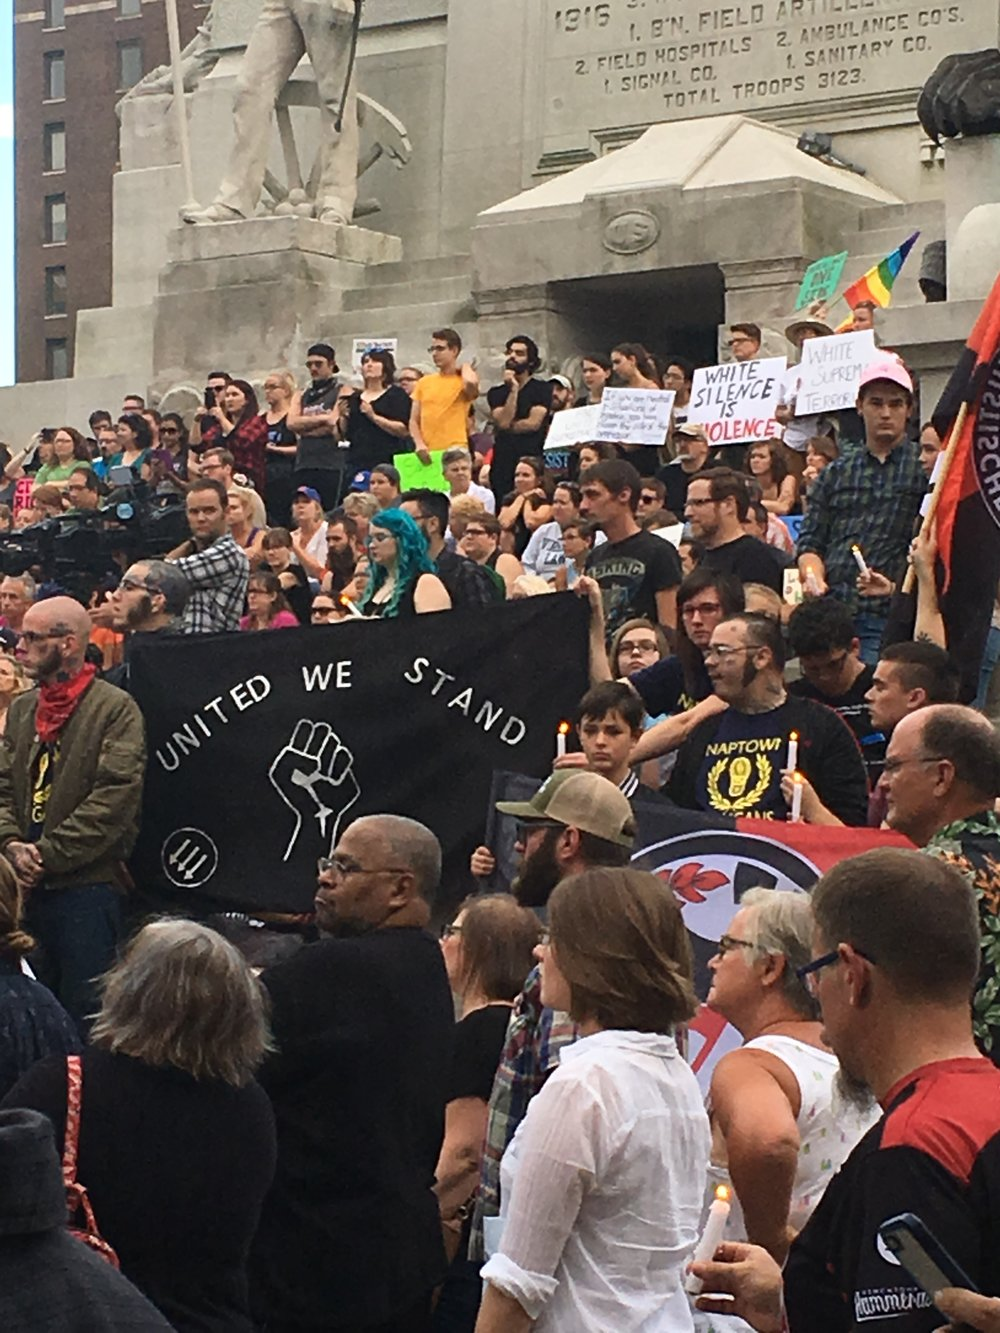 Demonstrators stand united on Monument Circle.